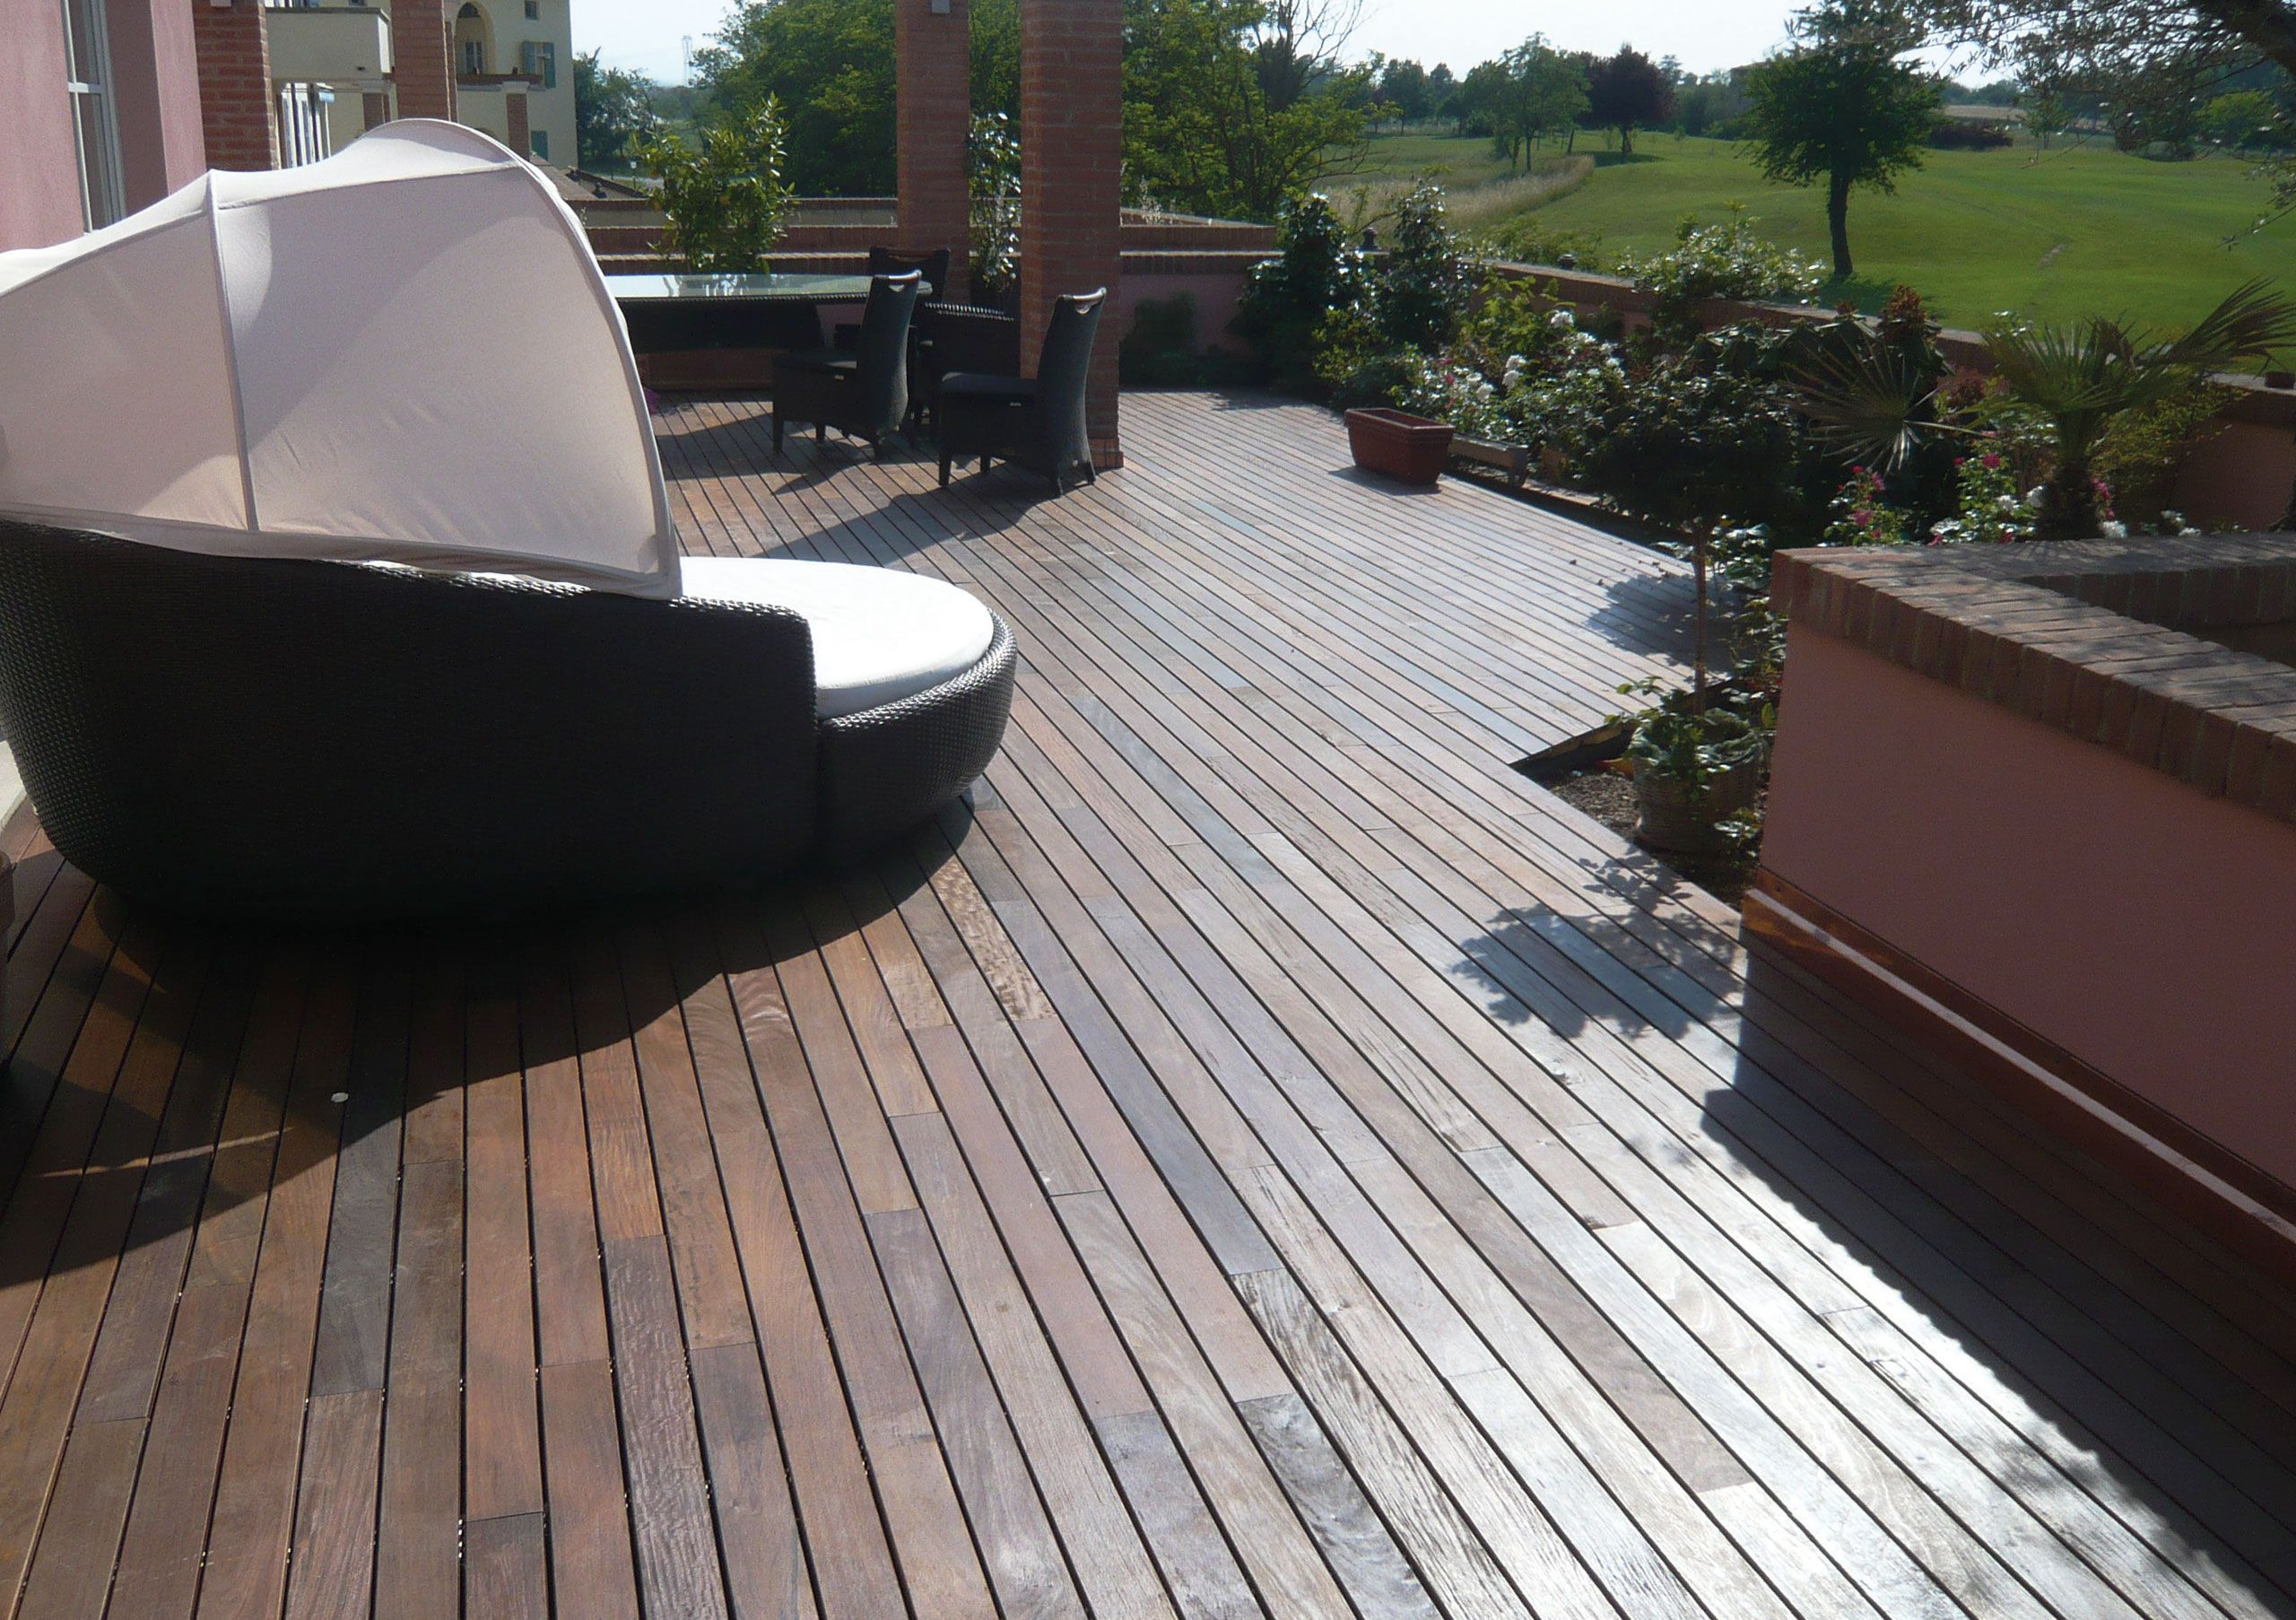 10 Ft Composite Patio Decking 10 Ft X 20 Ft Deck Kit Outdoor Wpc throughout size 2560 X 1806